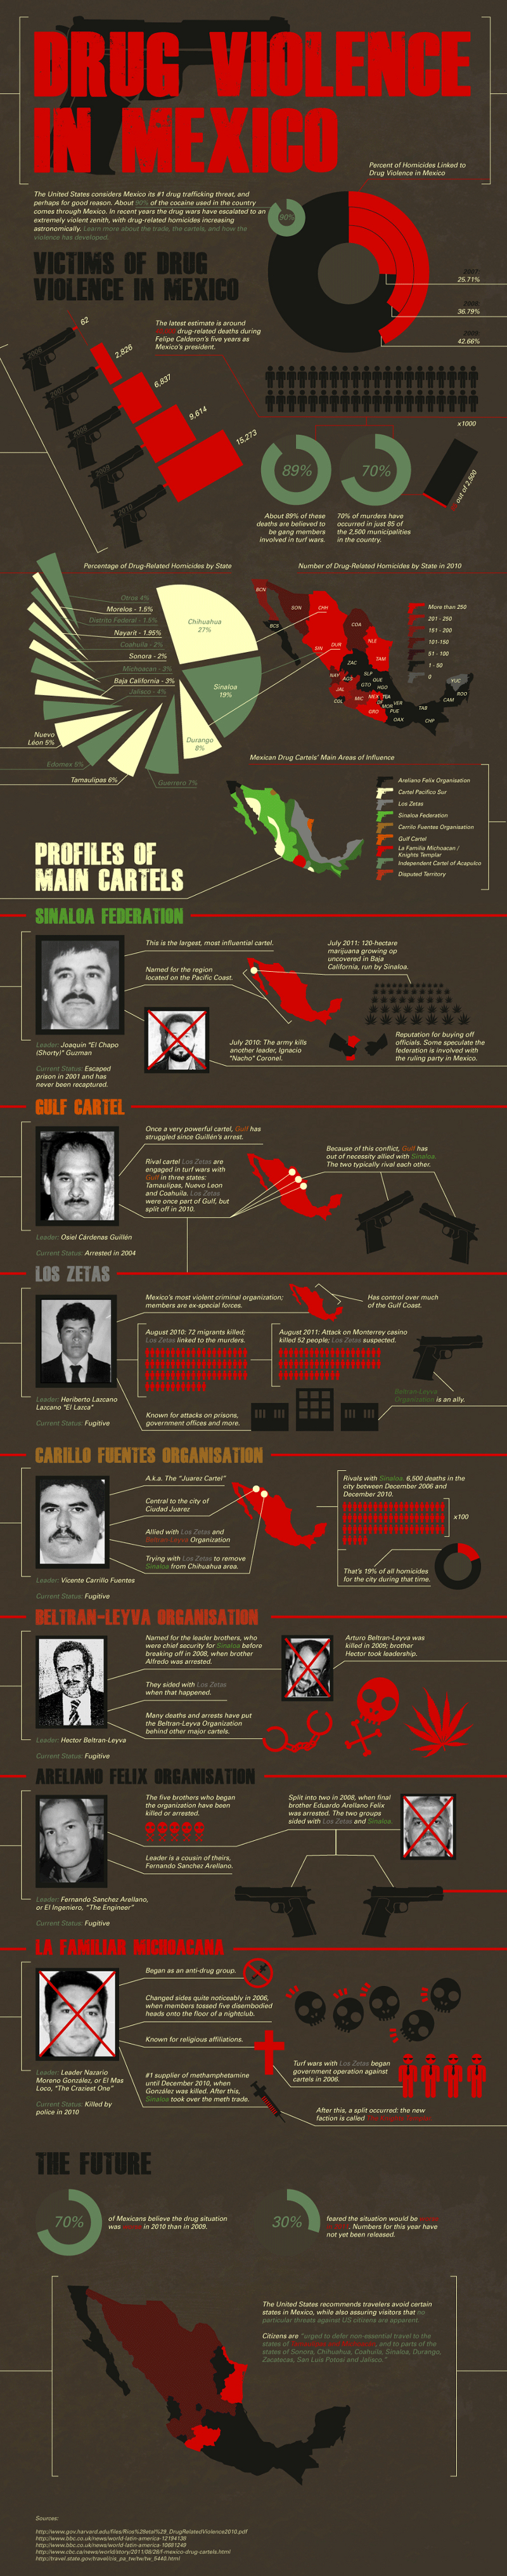 Rise of Drug Violence in Mexico